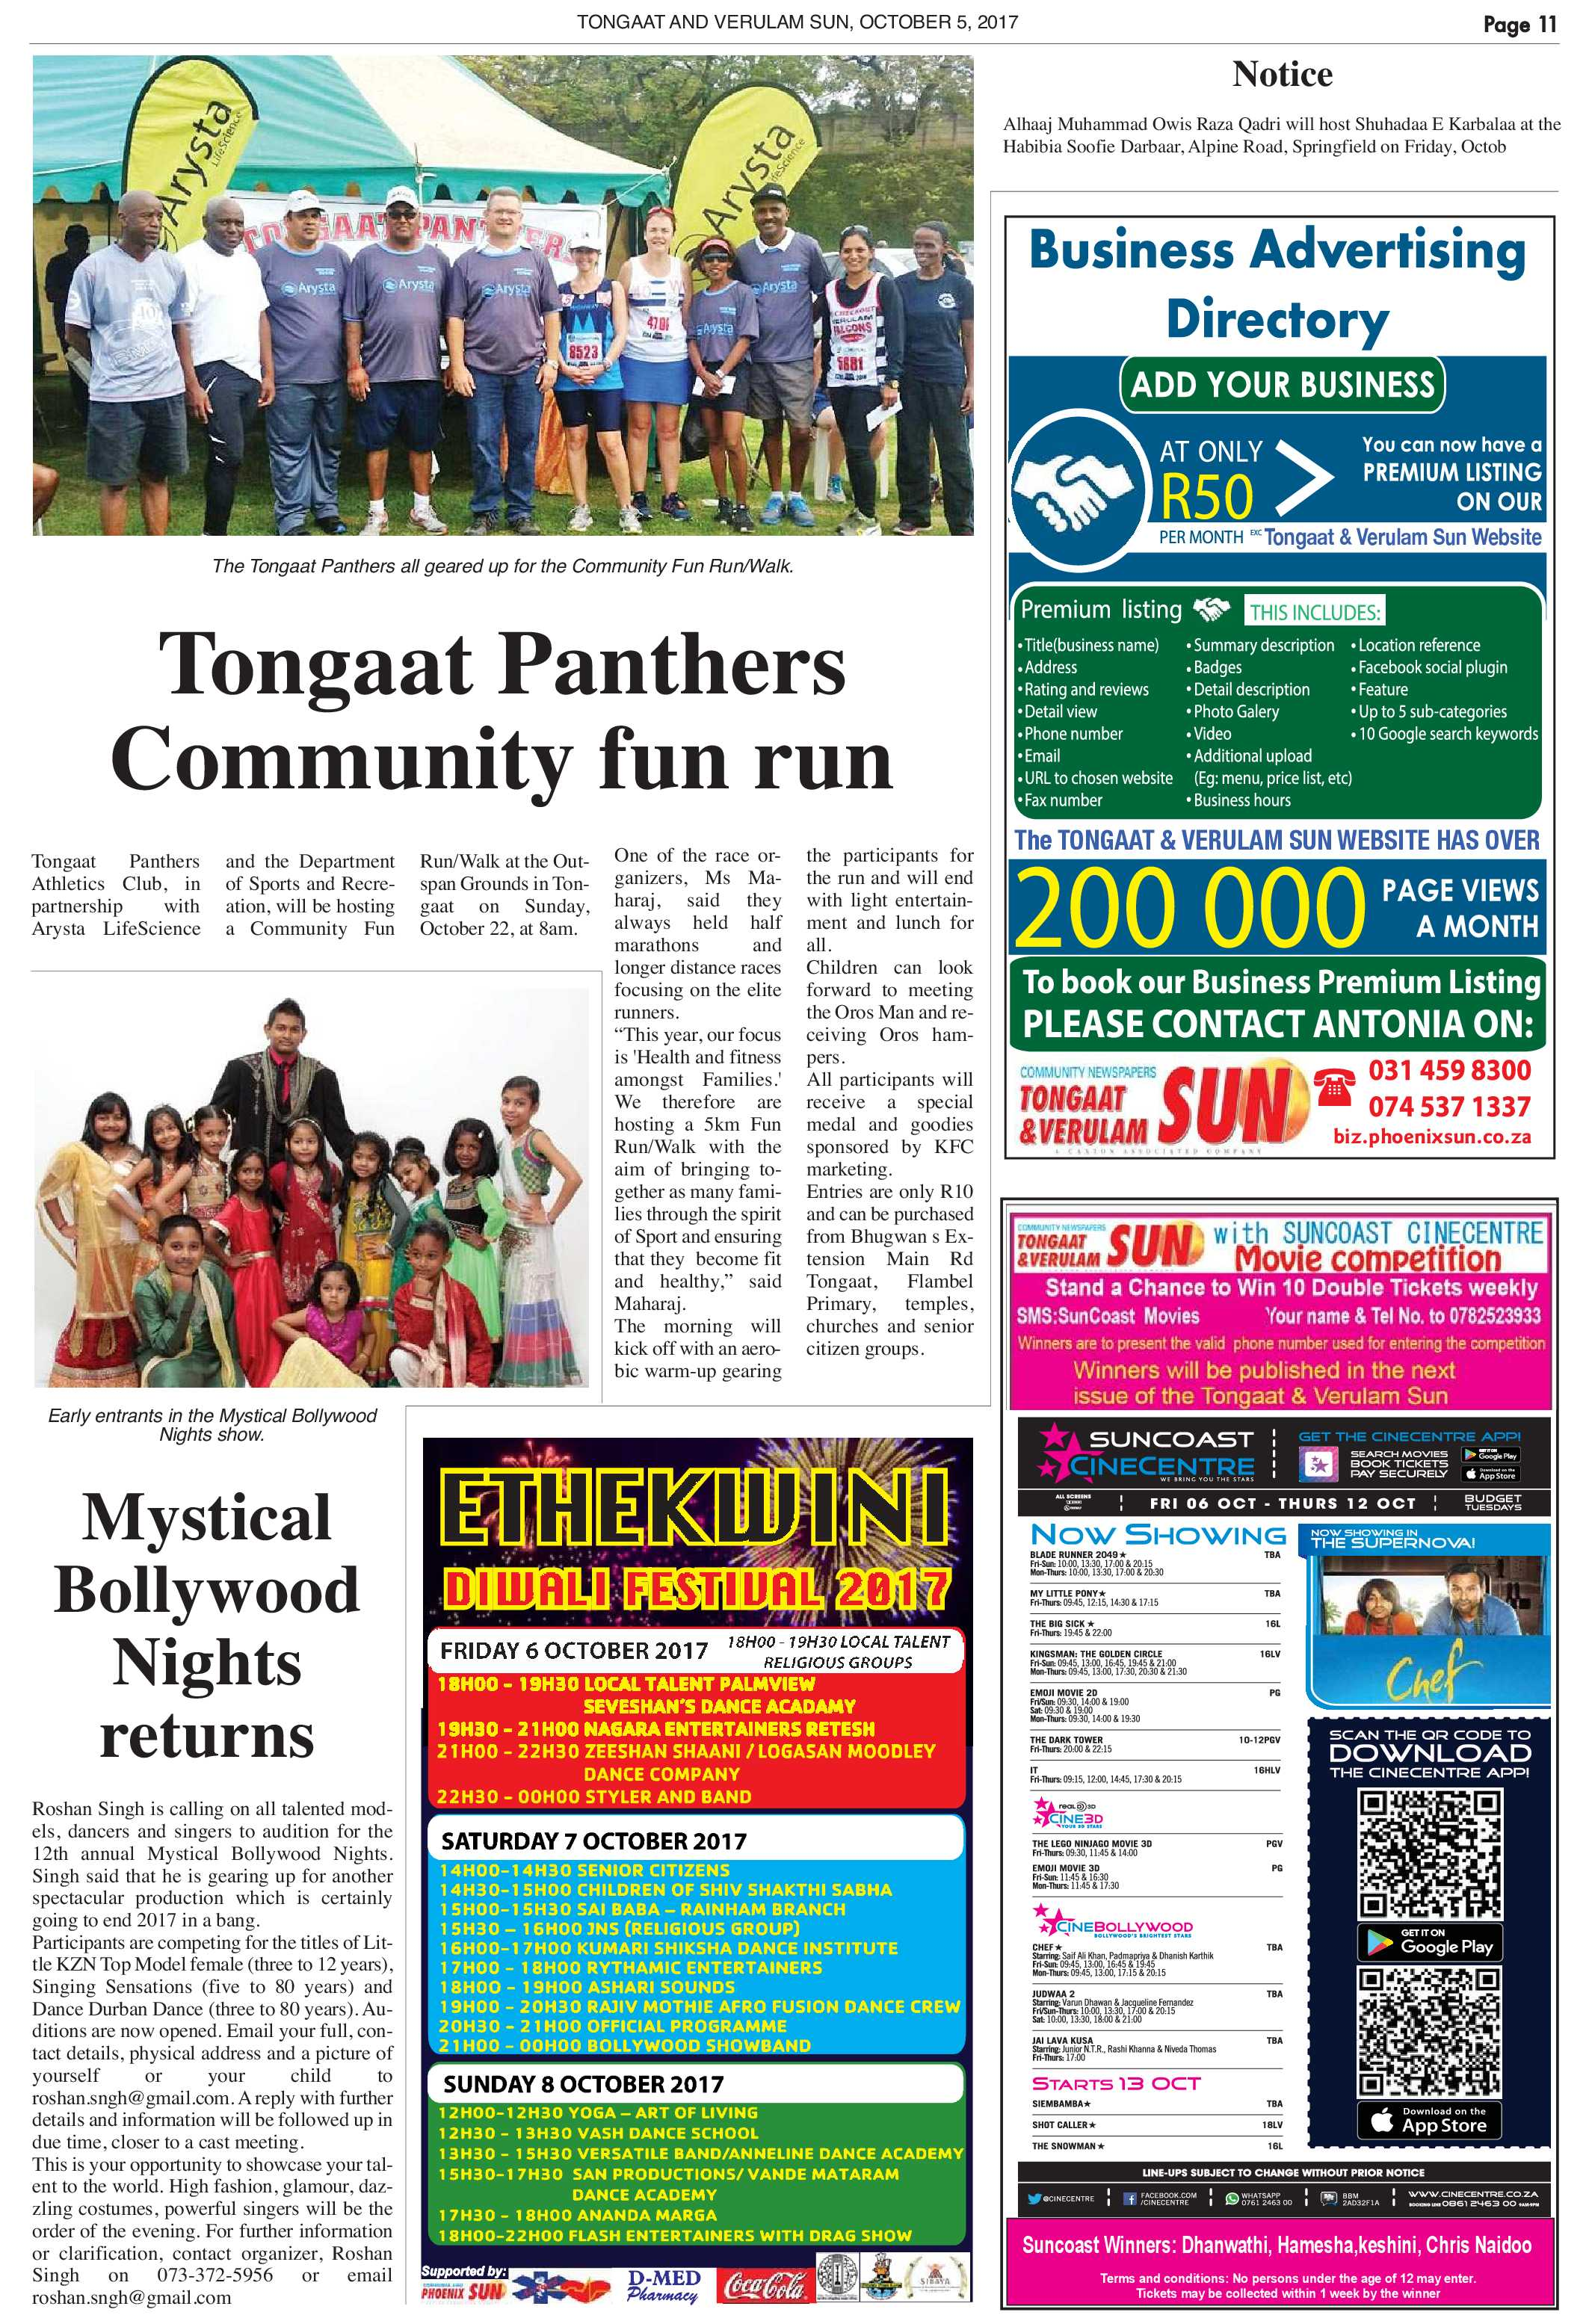 tongaat-verulam-sun-october-5-epapers-page-11